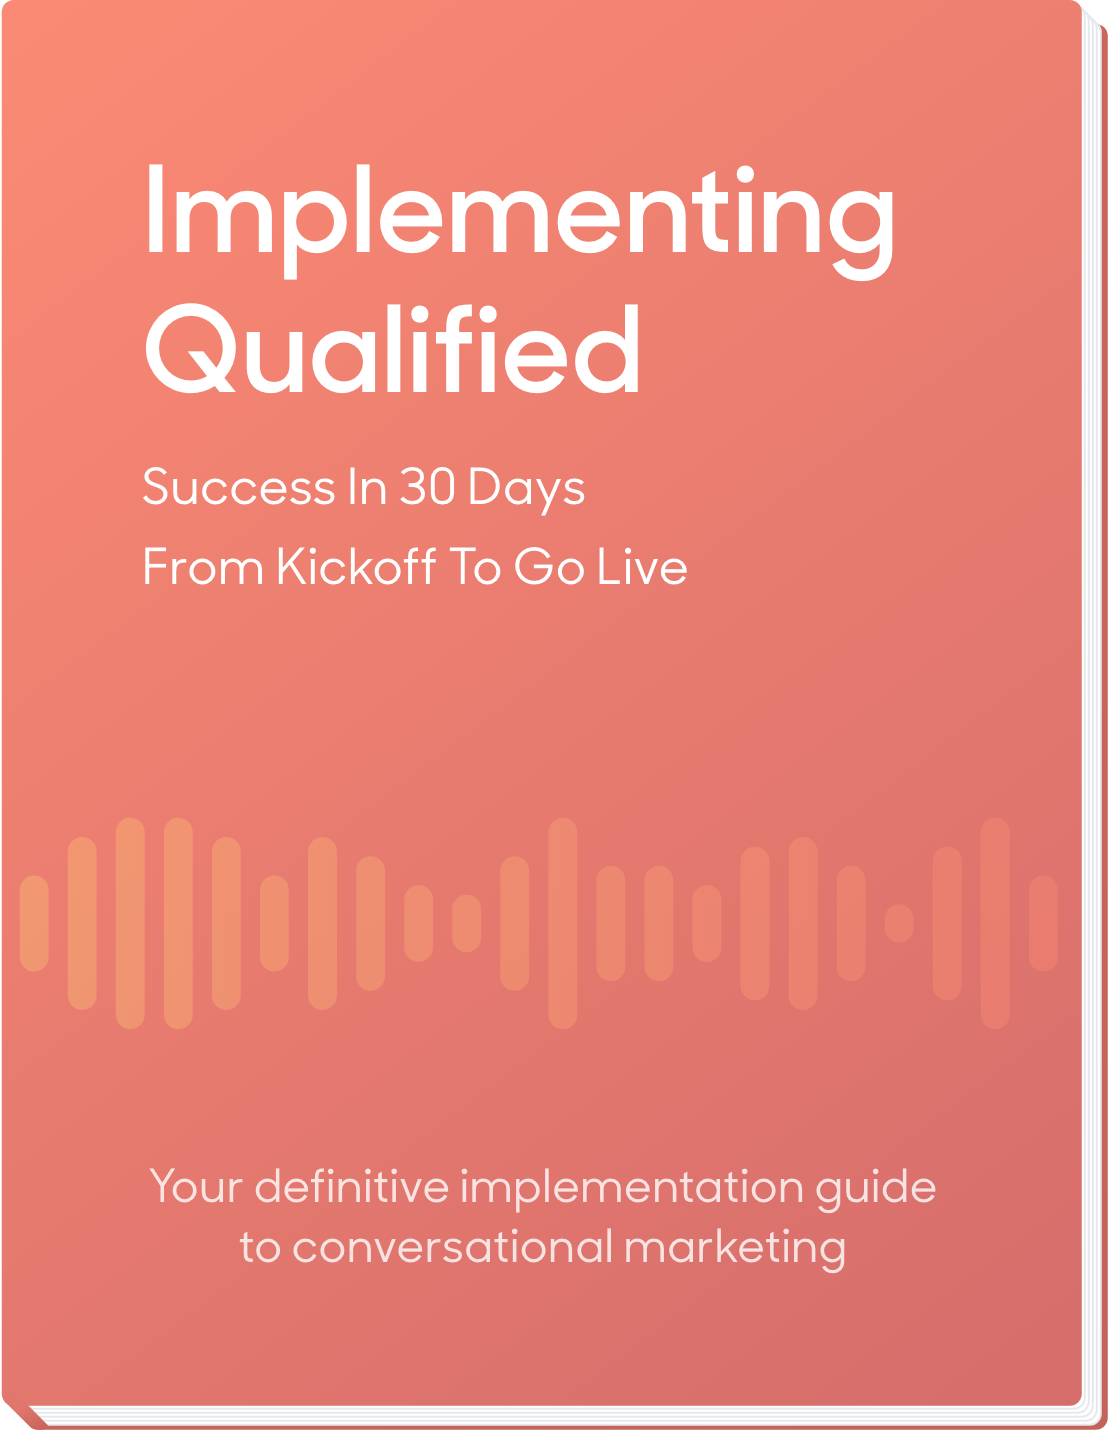 Implementing Qualified, Form Kickoff to Go-Live, Your Definitive Implementation Guide to Conversational Marketing